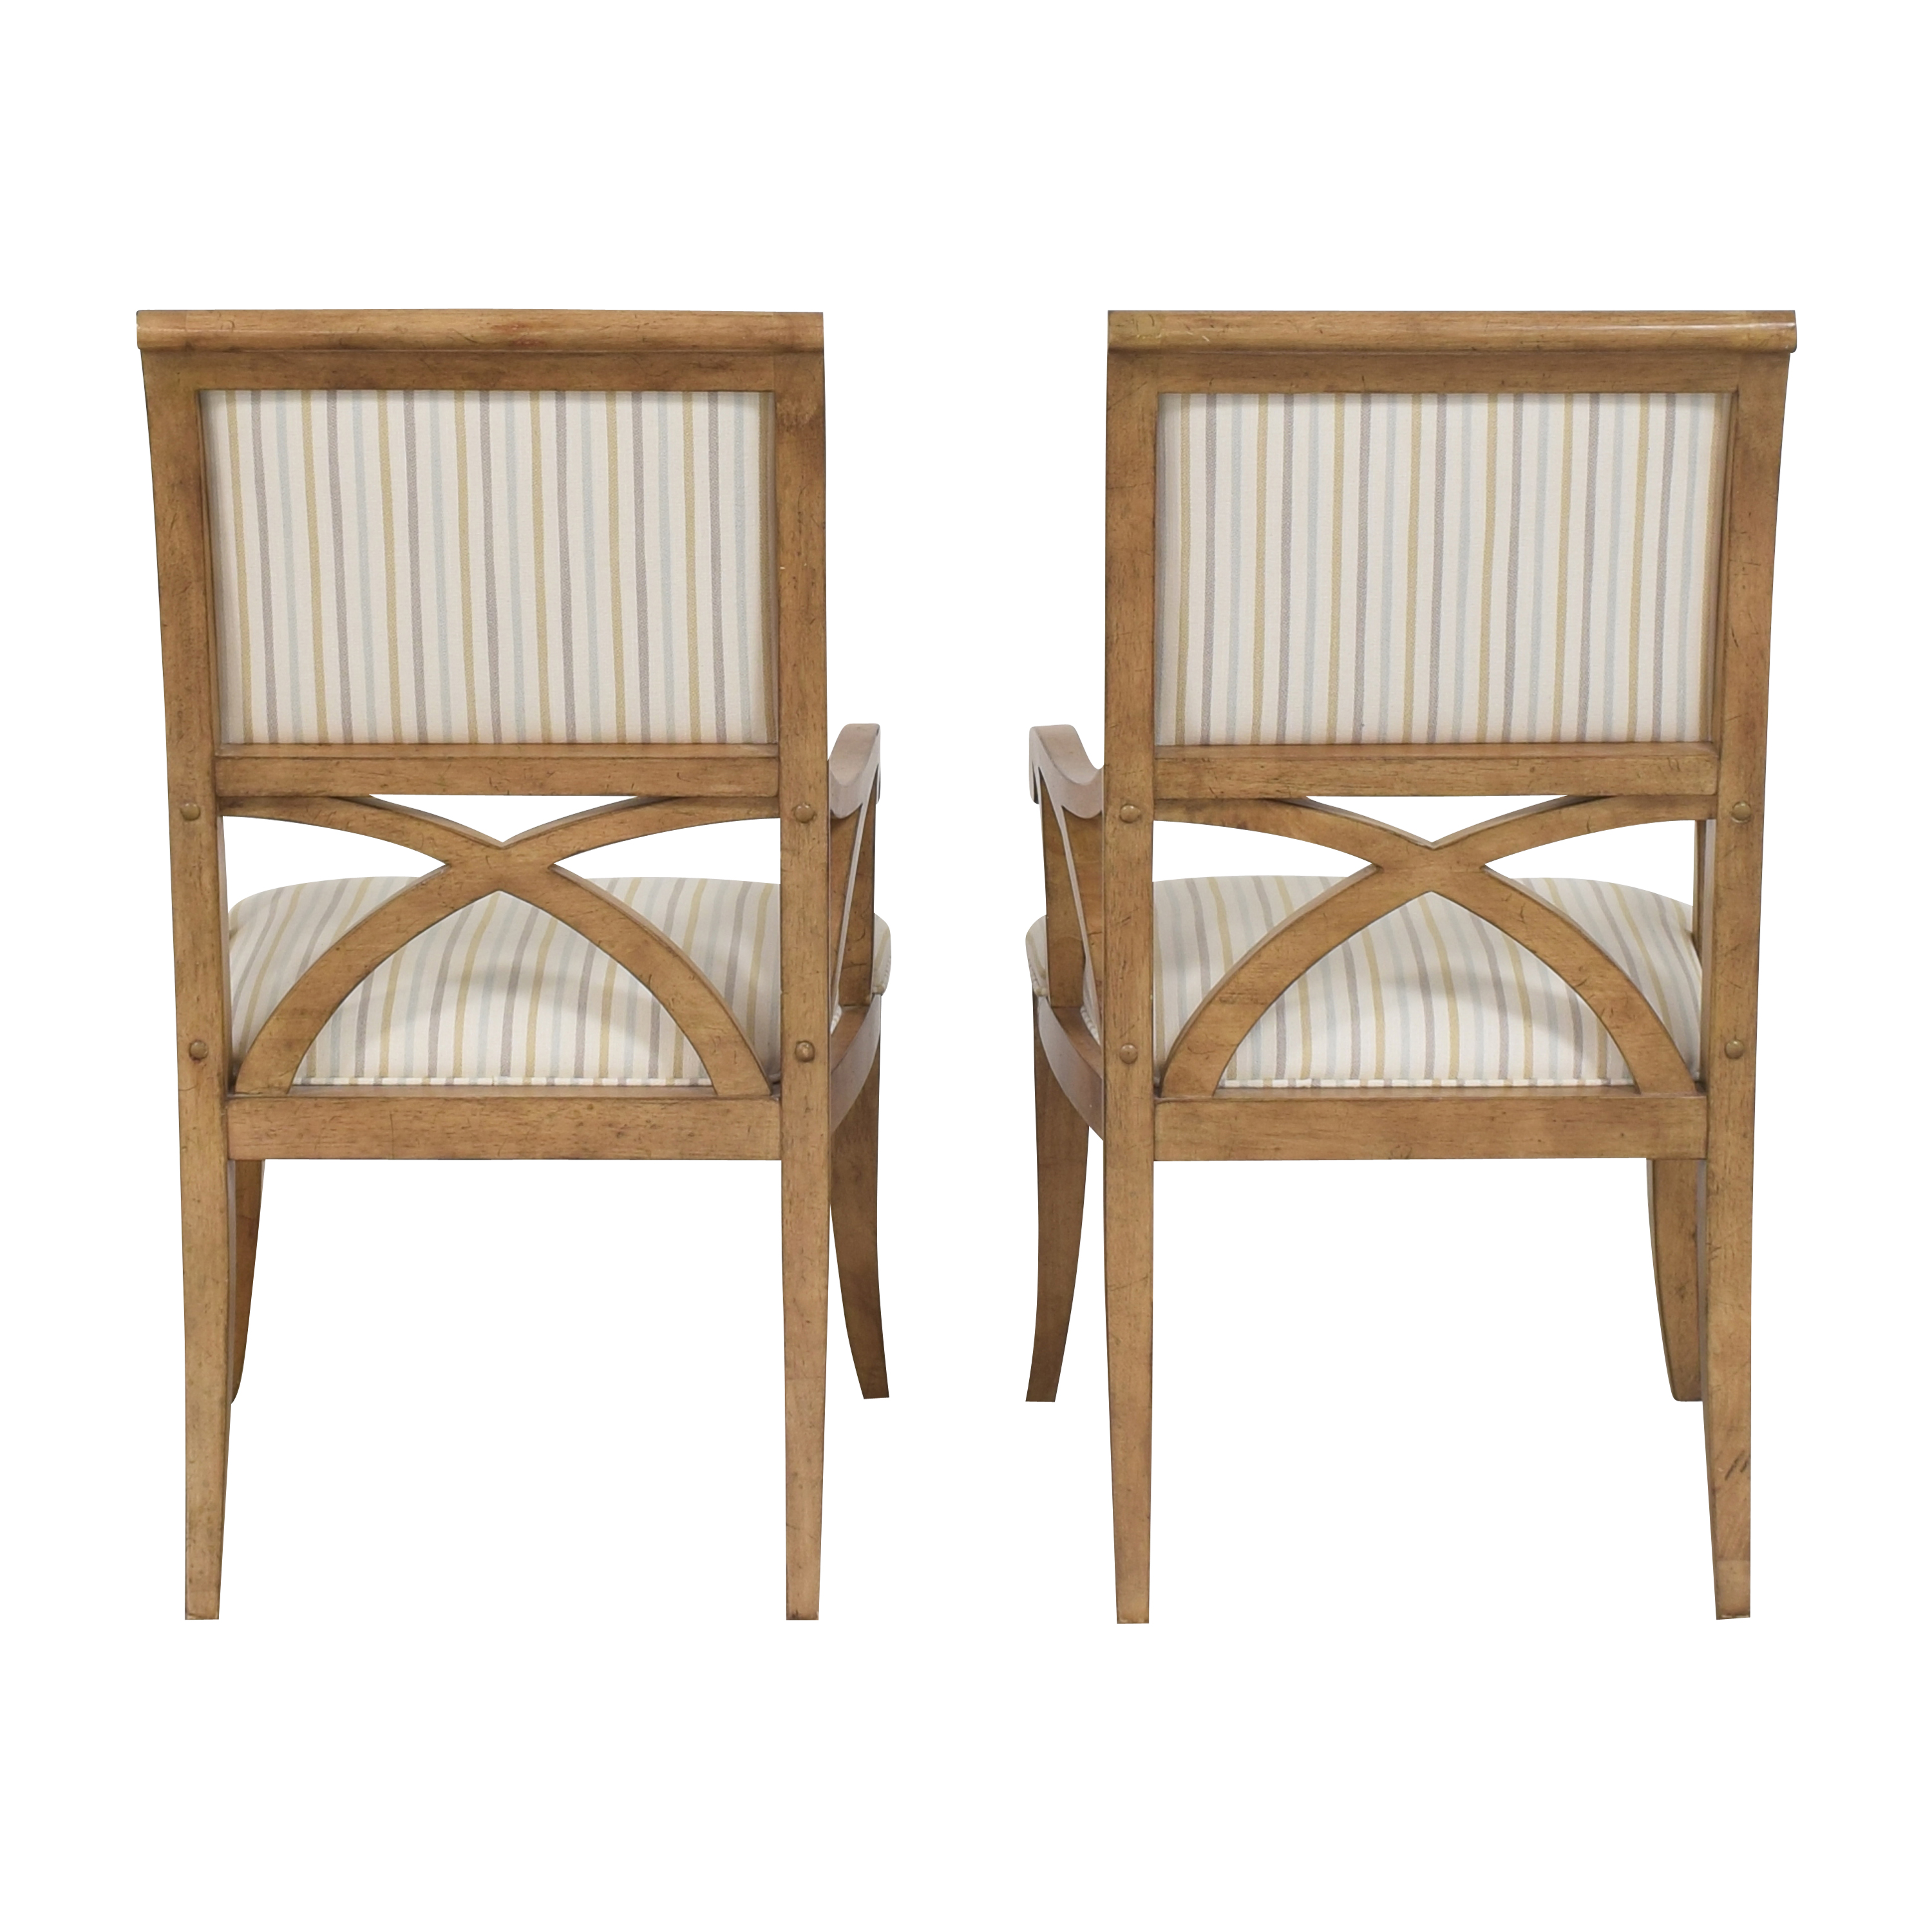 Thomasville Upholstered Dining Chairs sale